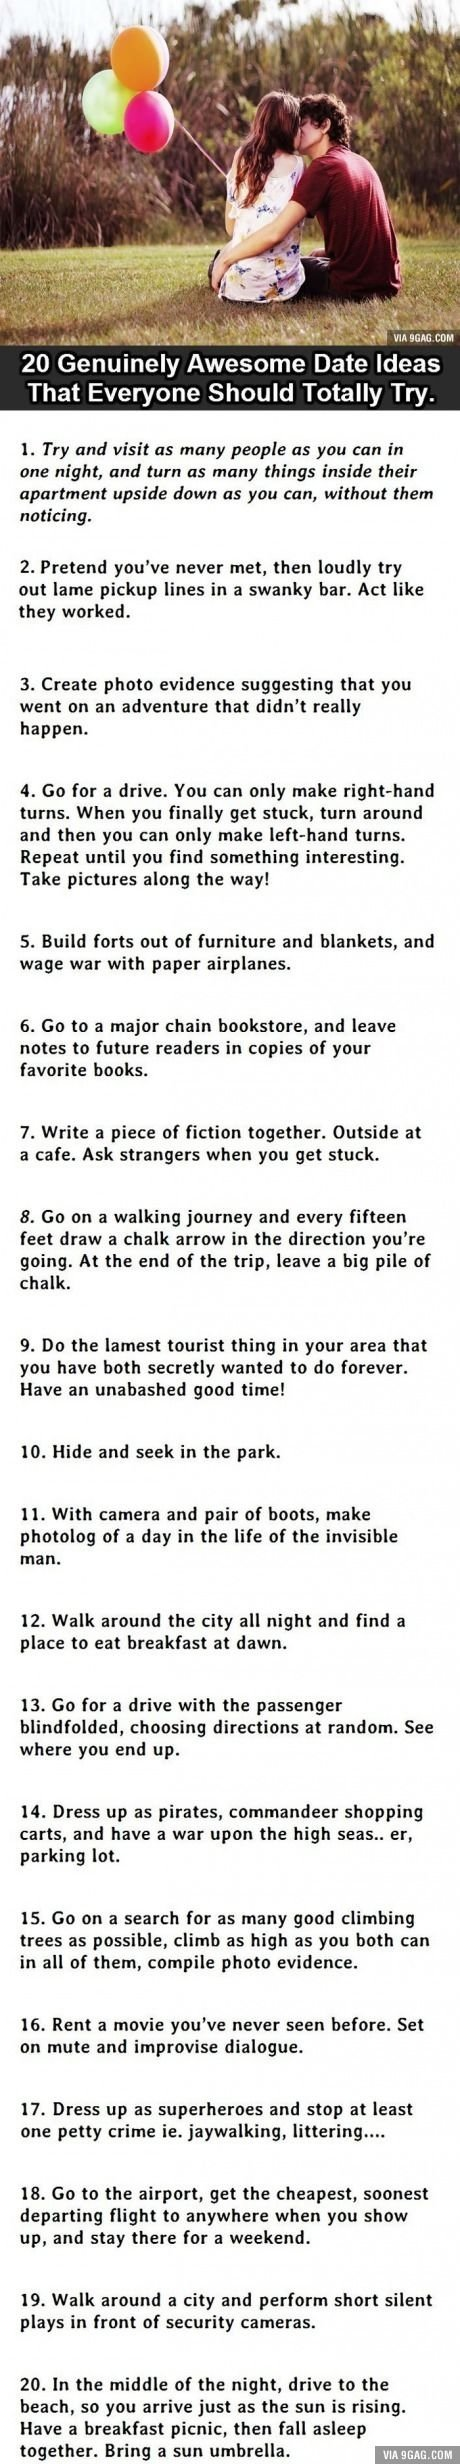 10 Attractive Date Ideas For Teenage Couples 20 great date ideas relationships random and stuffing 2021